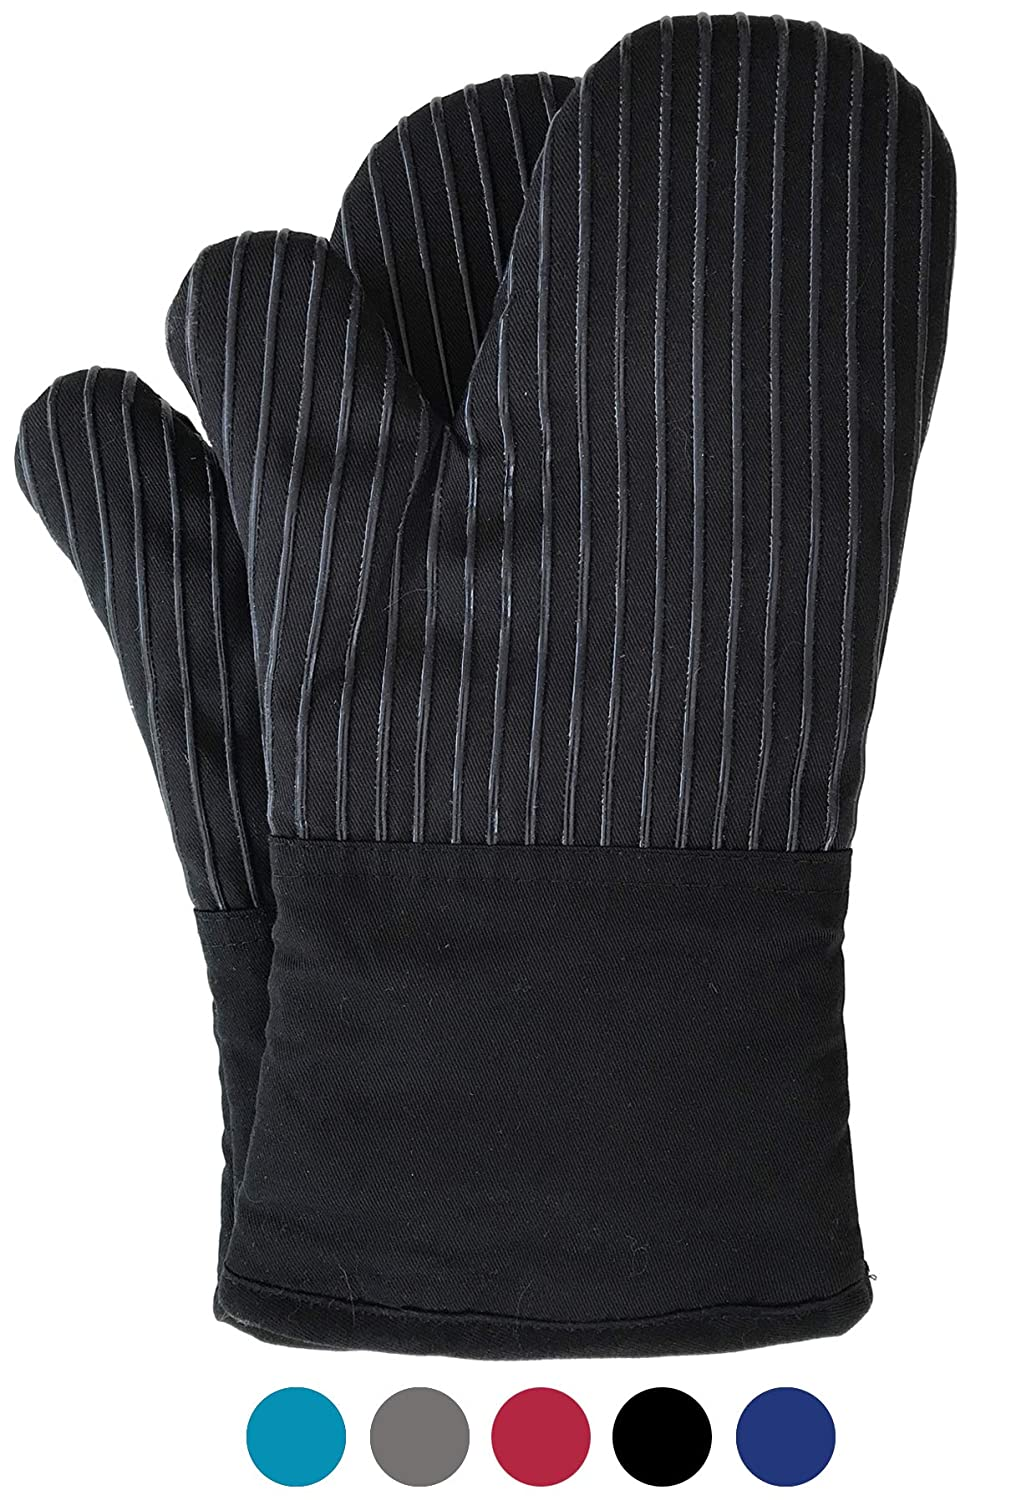 BIG RED HOUSE Oven Mitts, with The Heat Resistance of Silicone and Flexibility of Cotton, Recycled Cotton Infill, Terrycloth Lining, 480 F Heat Resistant Pair Black